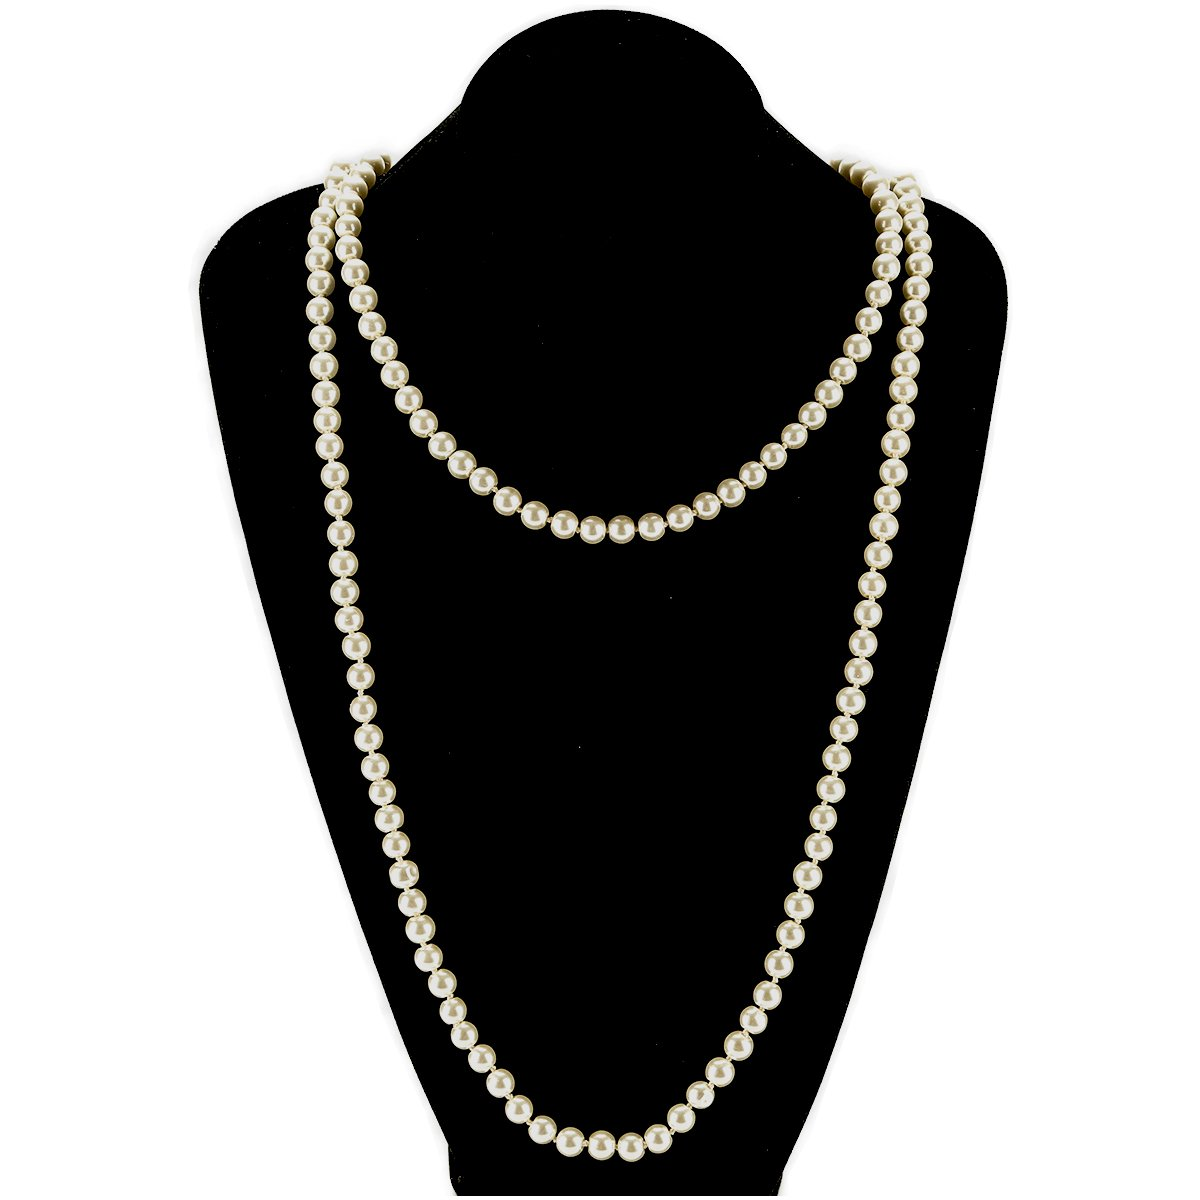 Utop Simulated Pearl Strand Necklace for Women 8mm Pearl Bead Manual Collar Necklace Black Long 55 LeeLoo